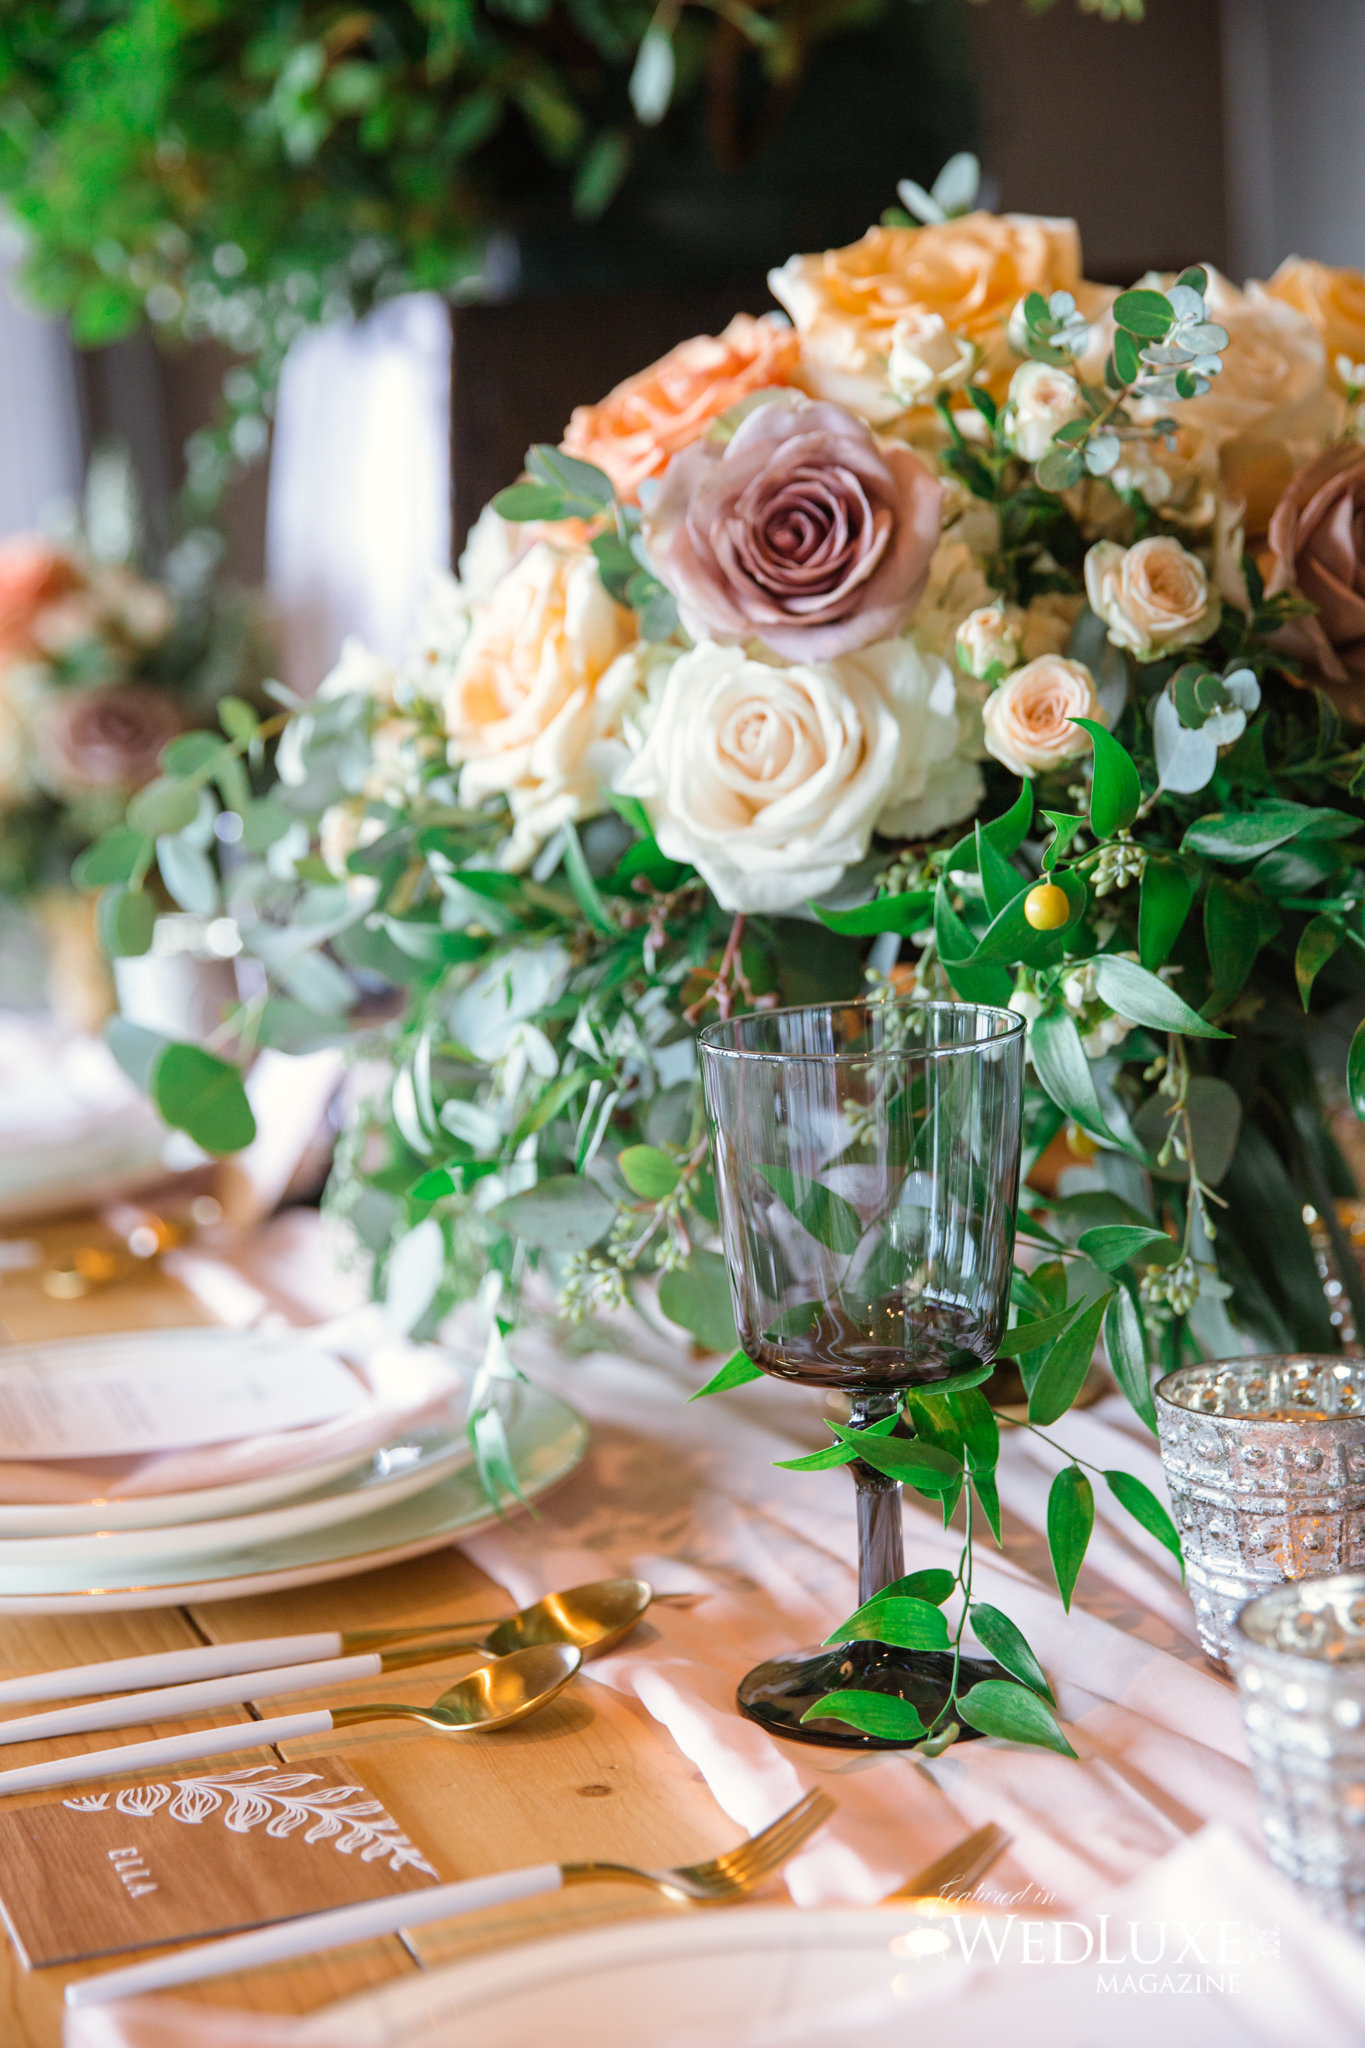 Styled Wedluxe Magazine Rustic Retreat place setting